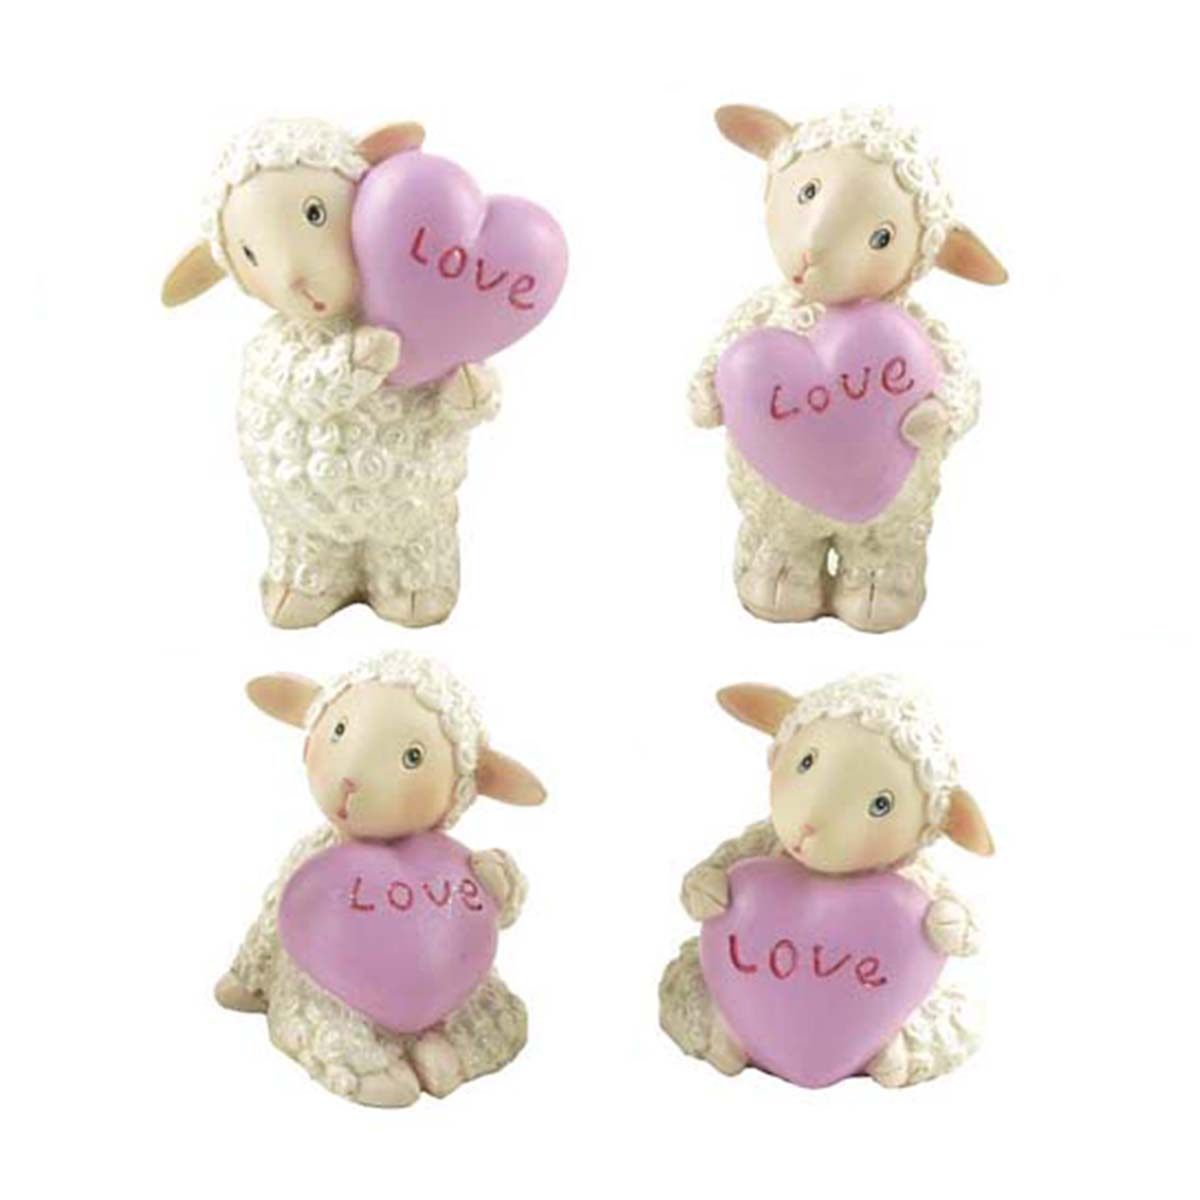 Ennas animal funny wedding cake toppers wholesale at discount-1